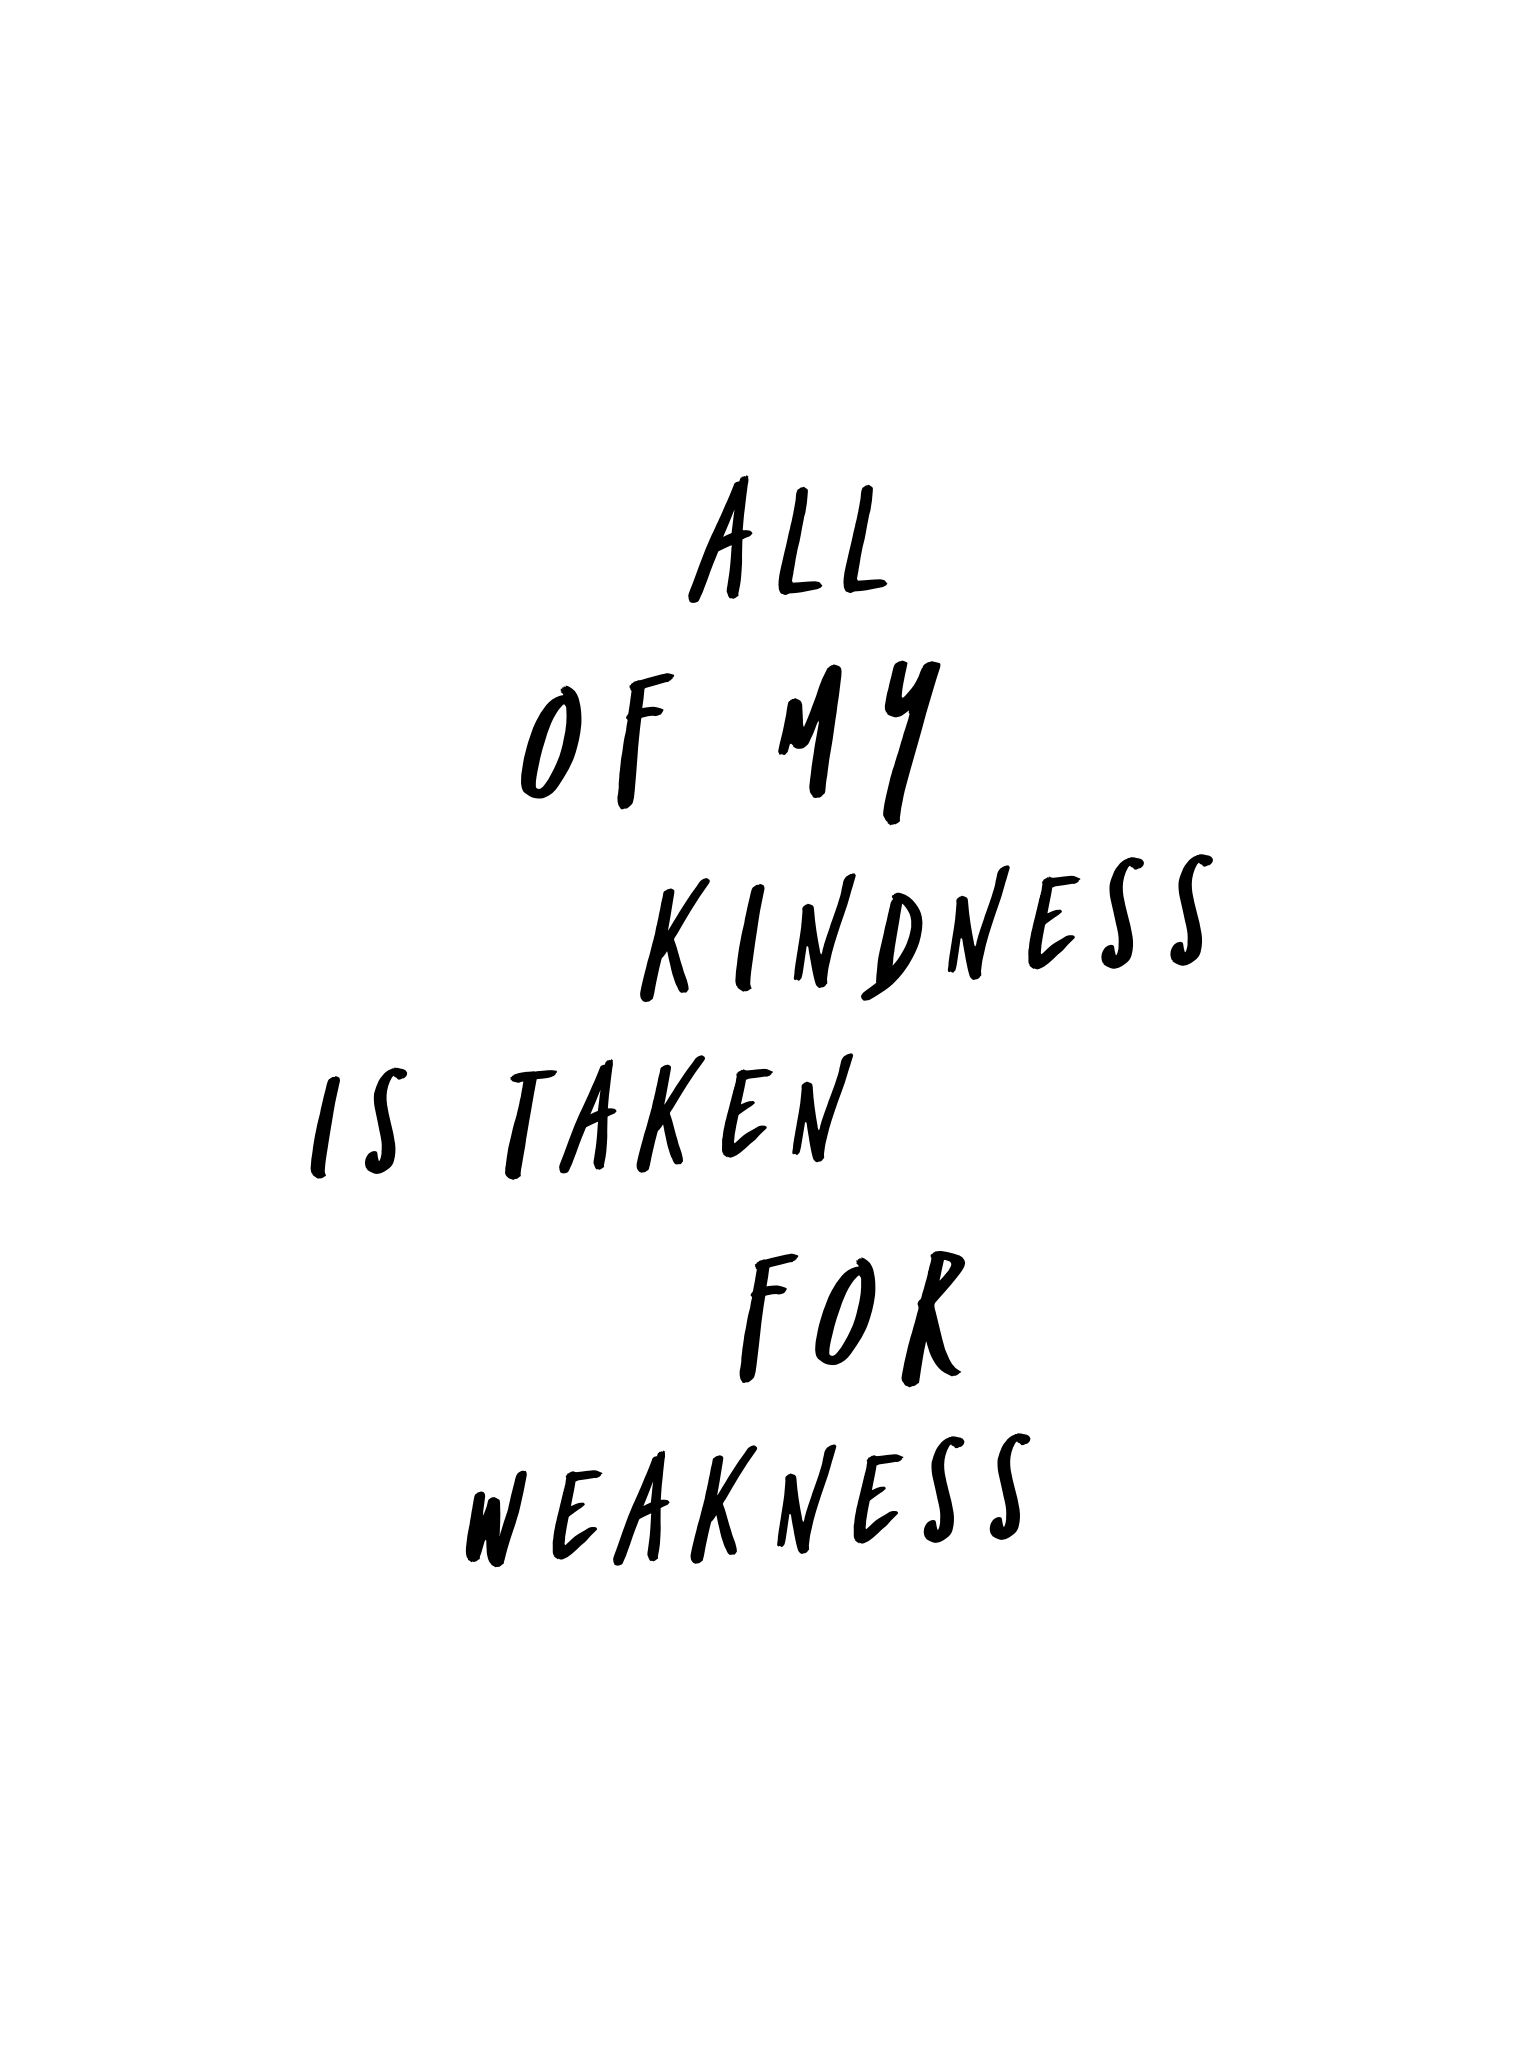 All of my kindness is taken for weakness Rihanna feat